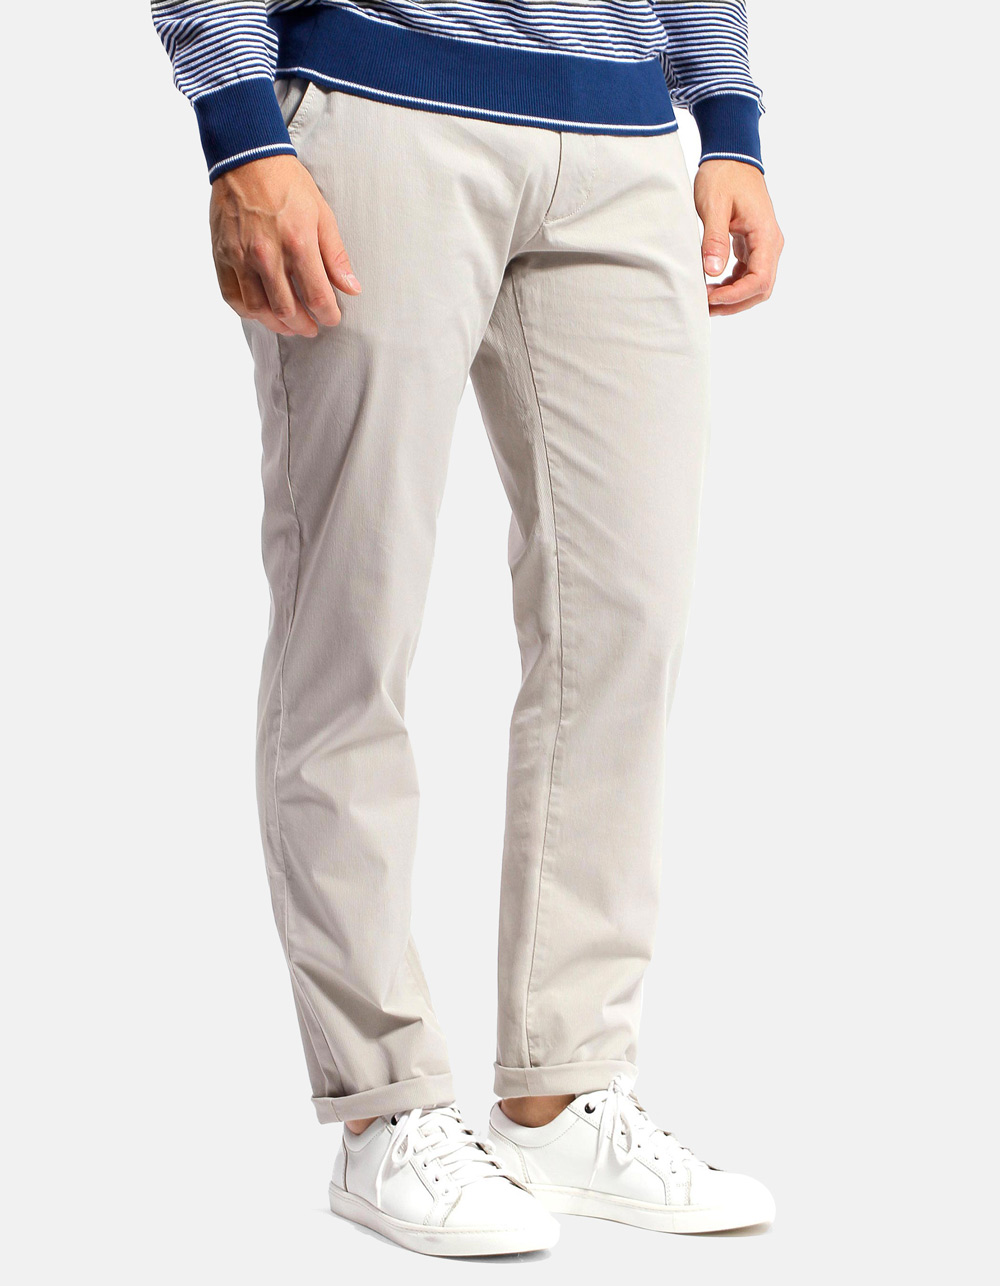 Grey canutillo chinos